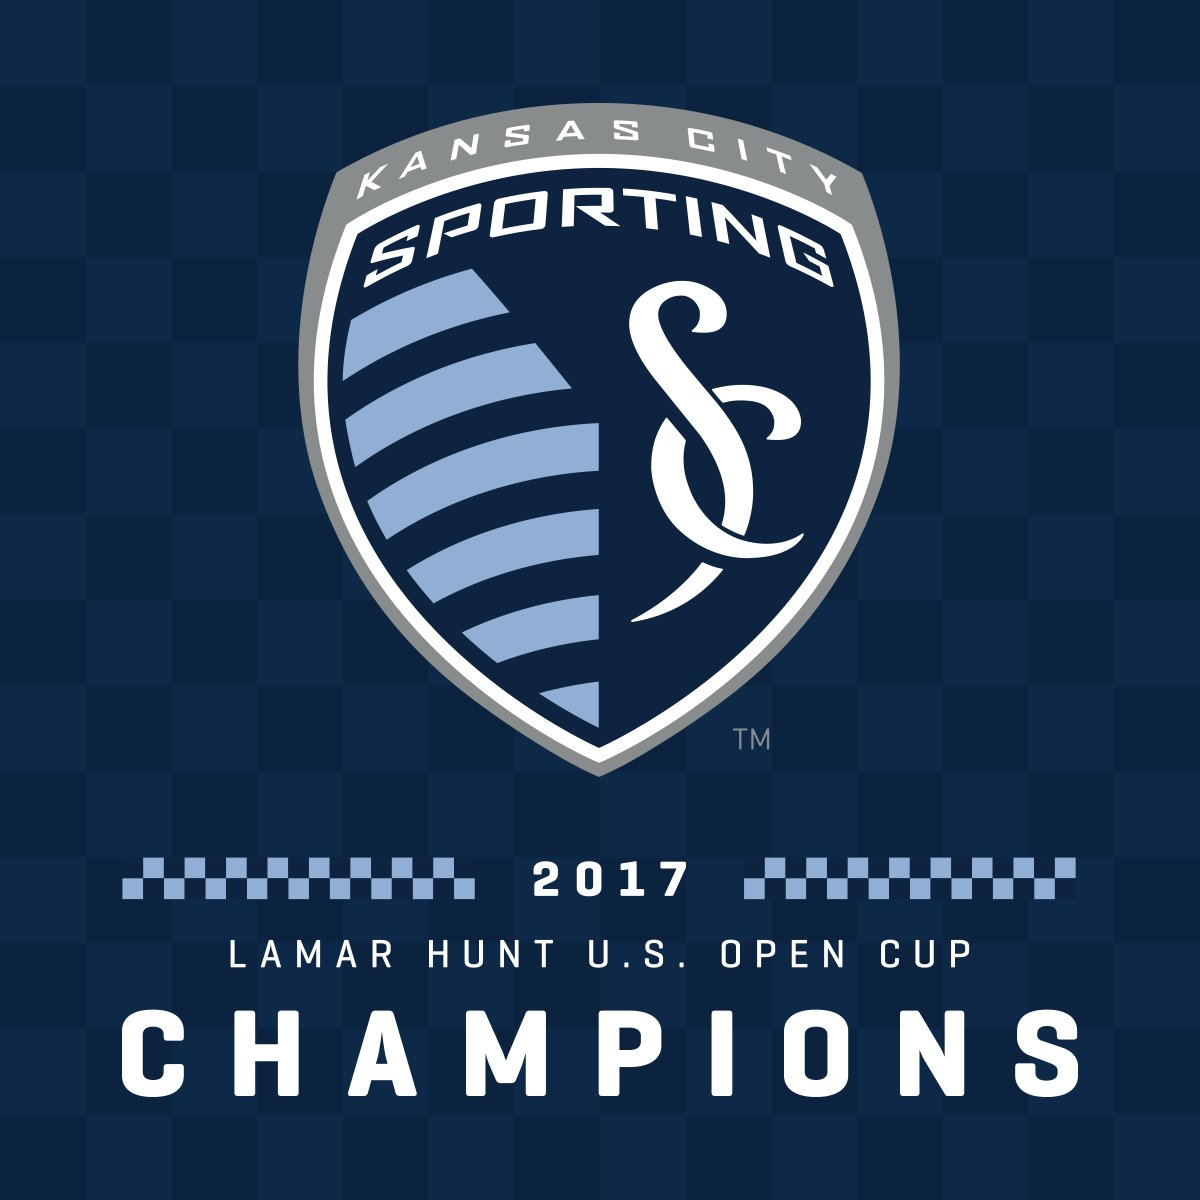 SPORTING KC ARE YOUR 2017 LAMAR HUNT U.S. OPEN CUP CHAMPIONS! #GottaHaveThatCup #WeTogether https://t.co/bOcXofaGmk